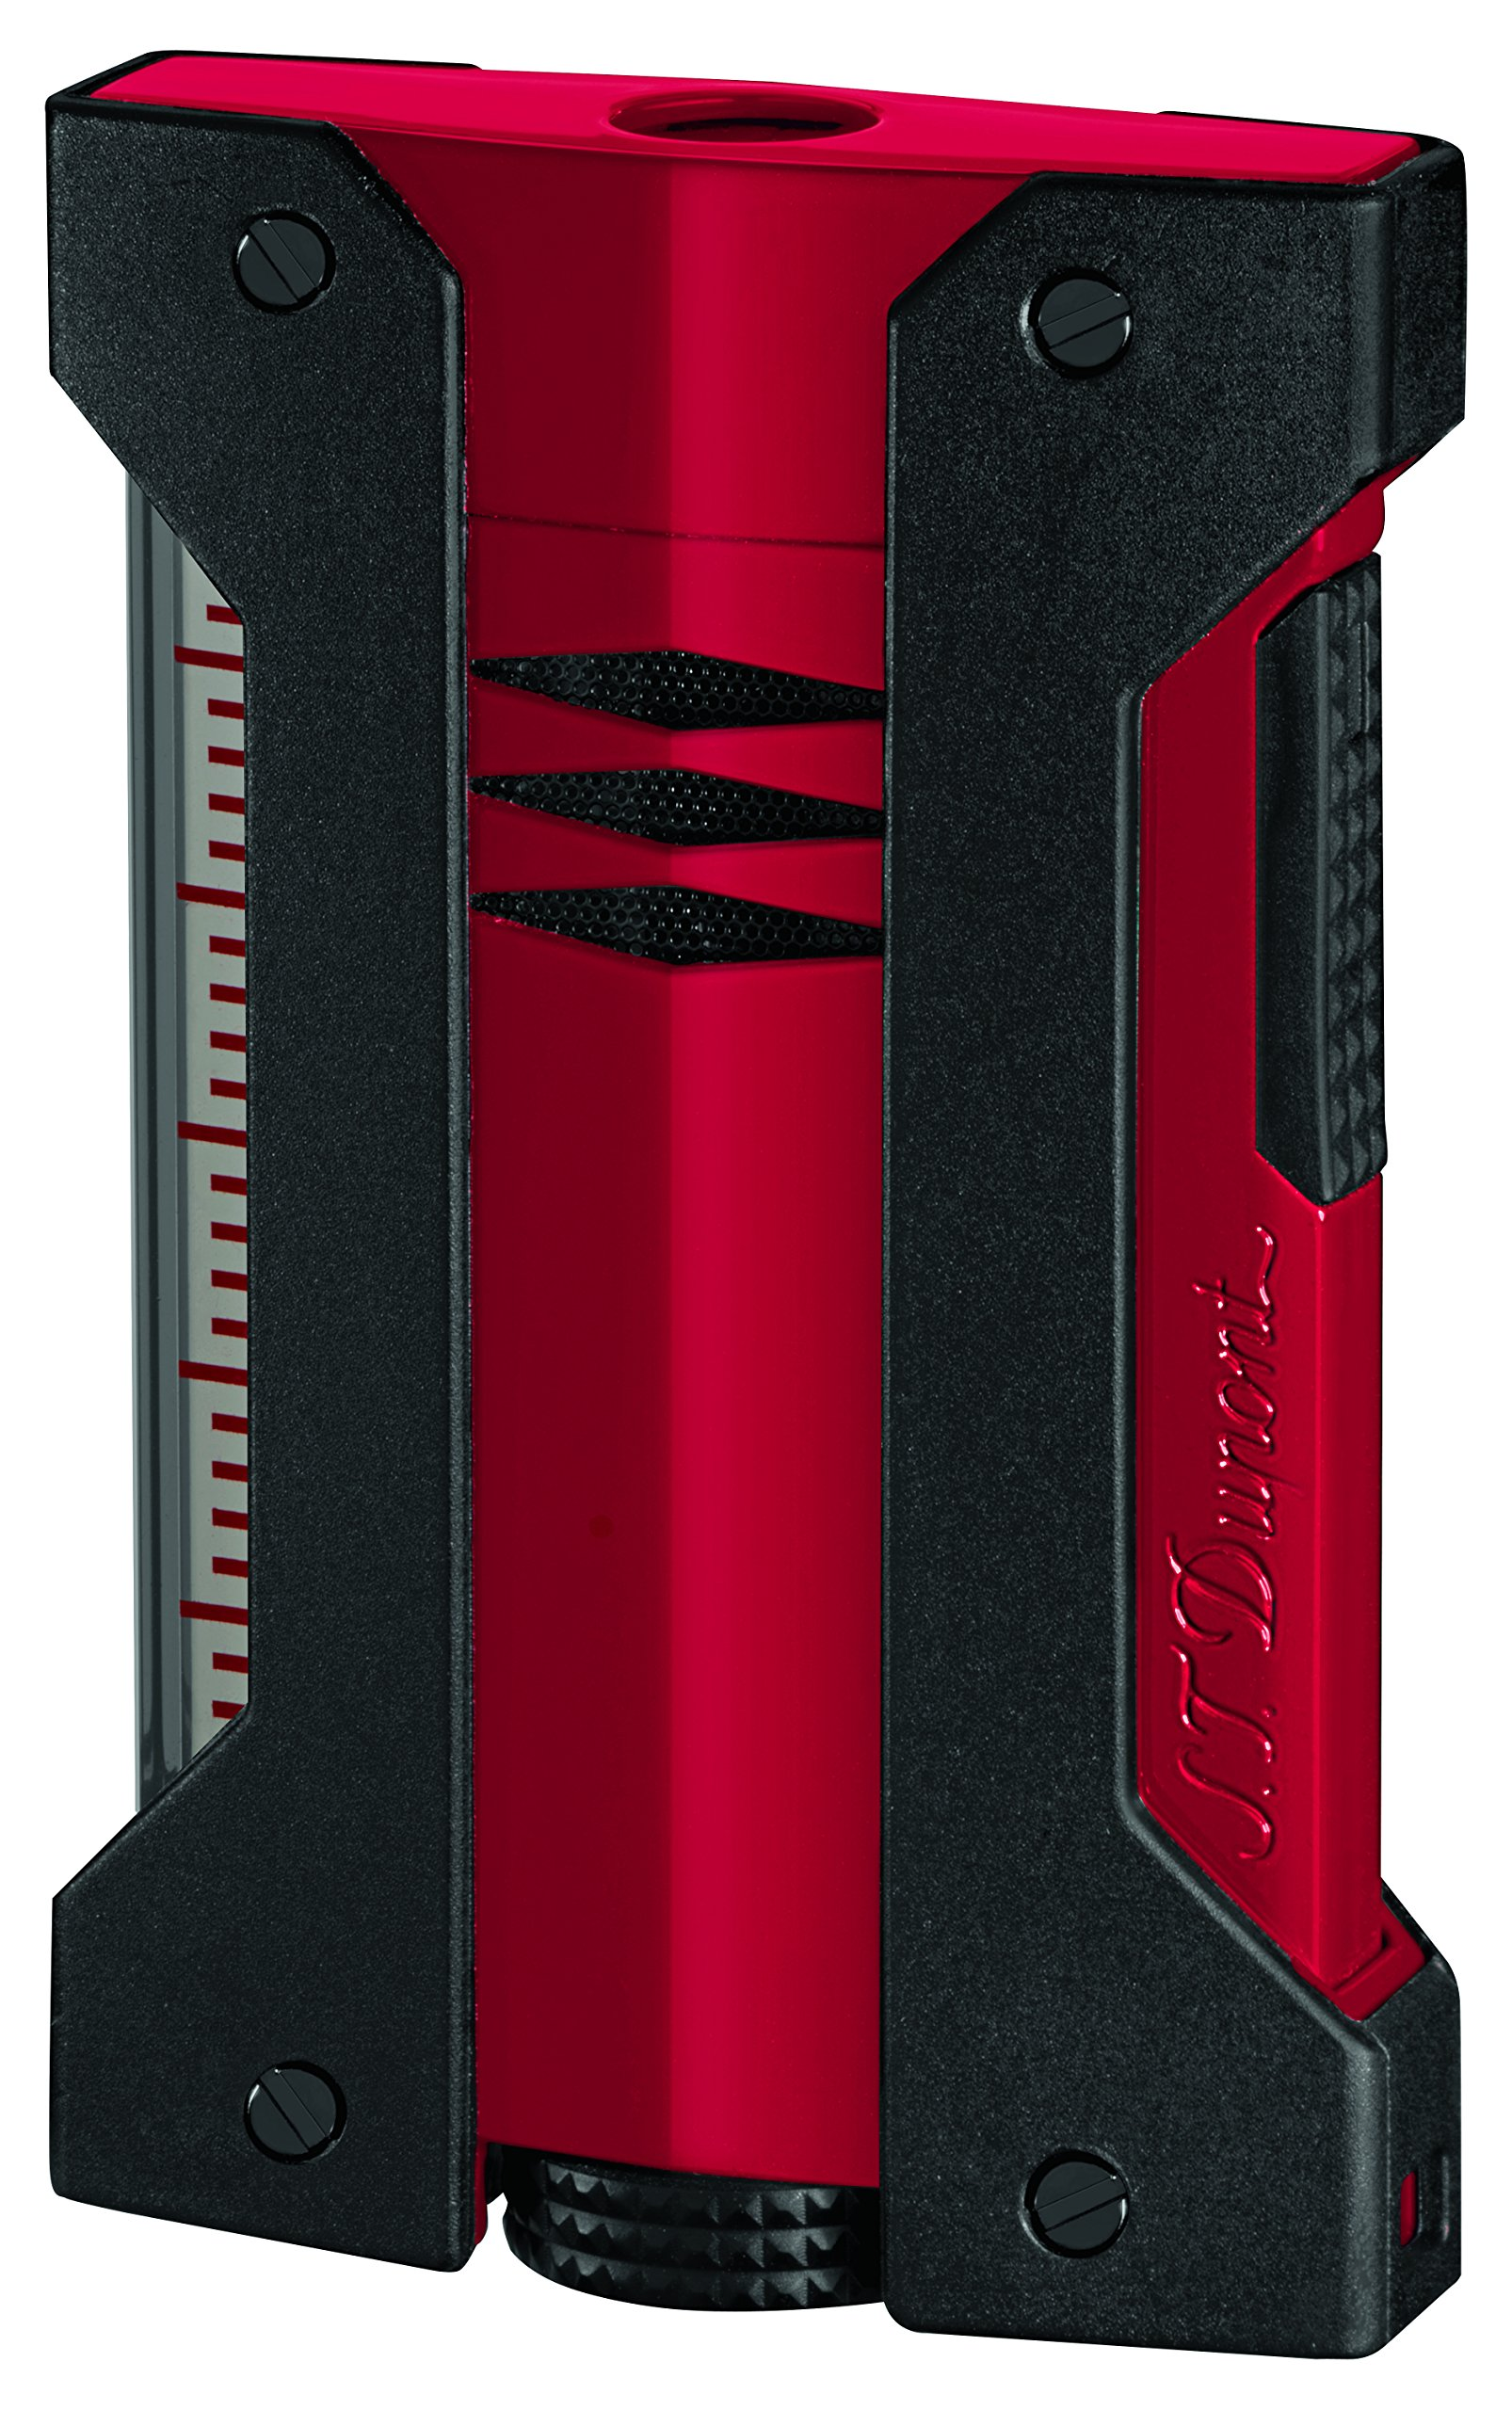 S.T. Dupont Defi Extreme Torch Lighter (Red)